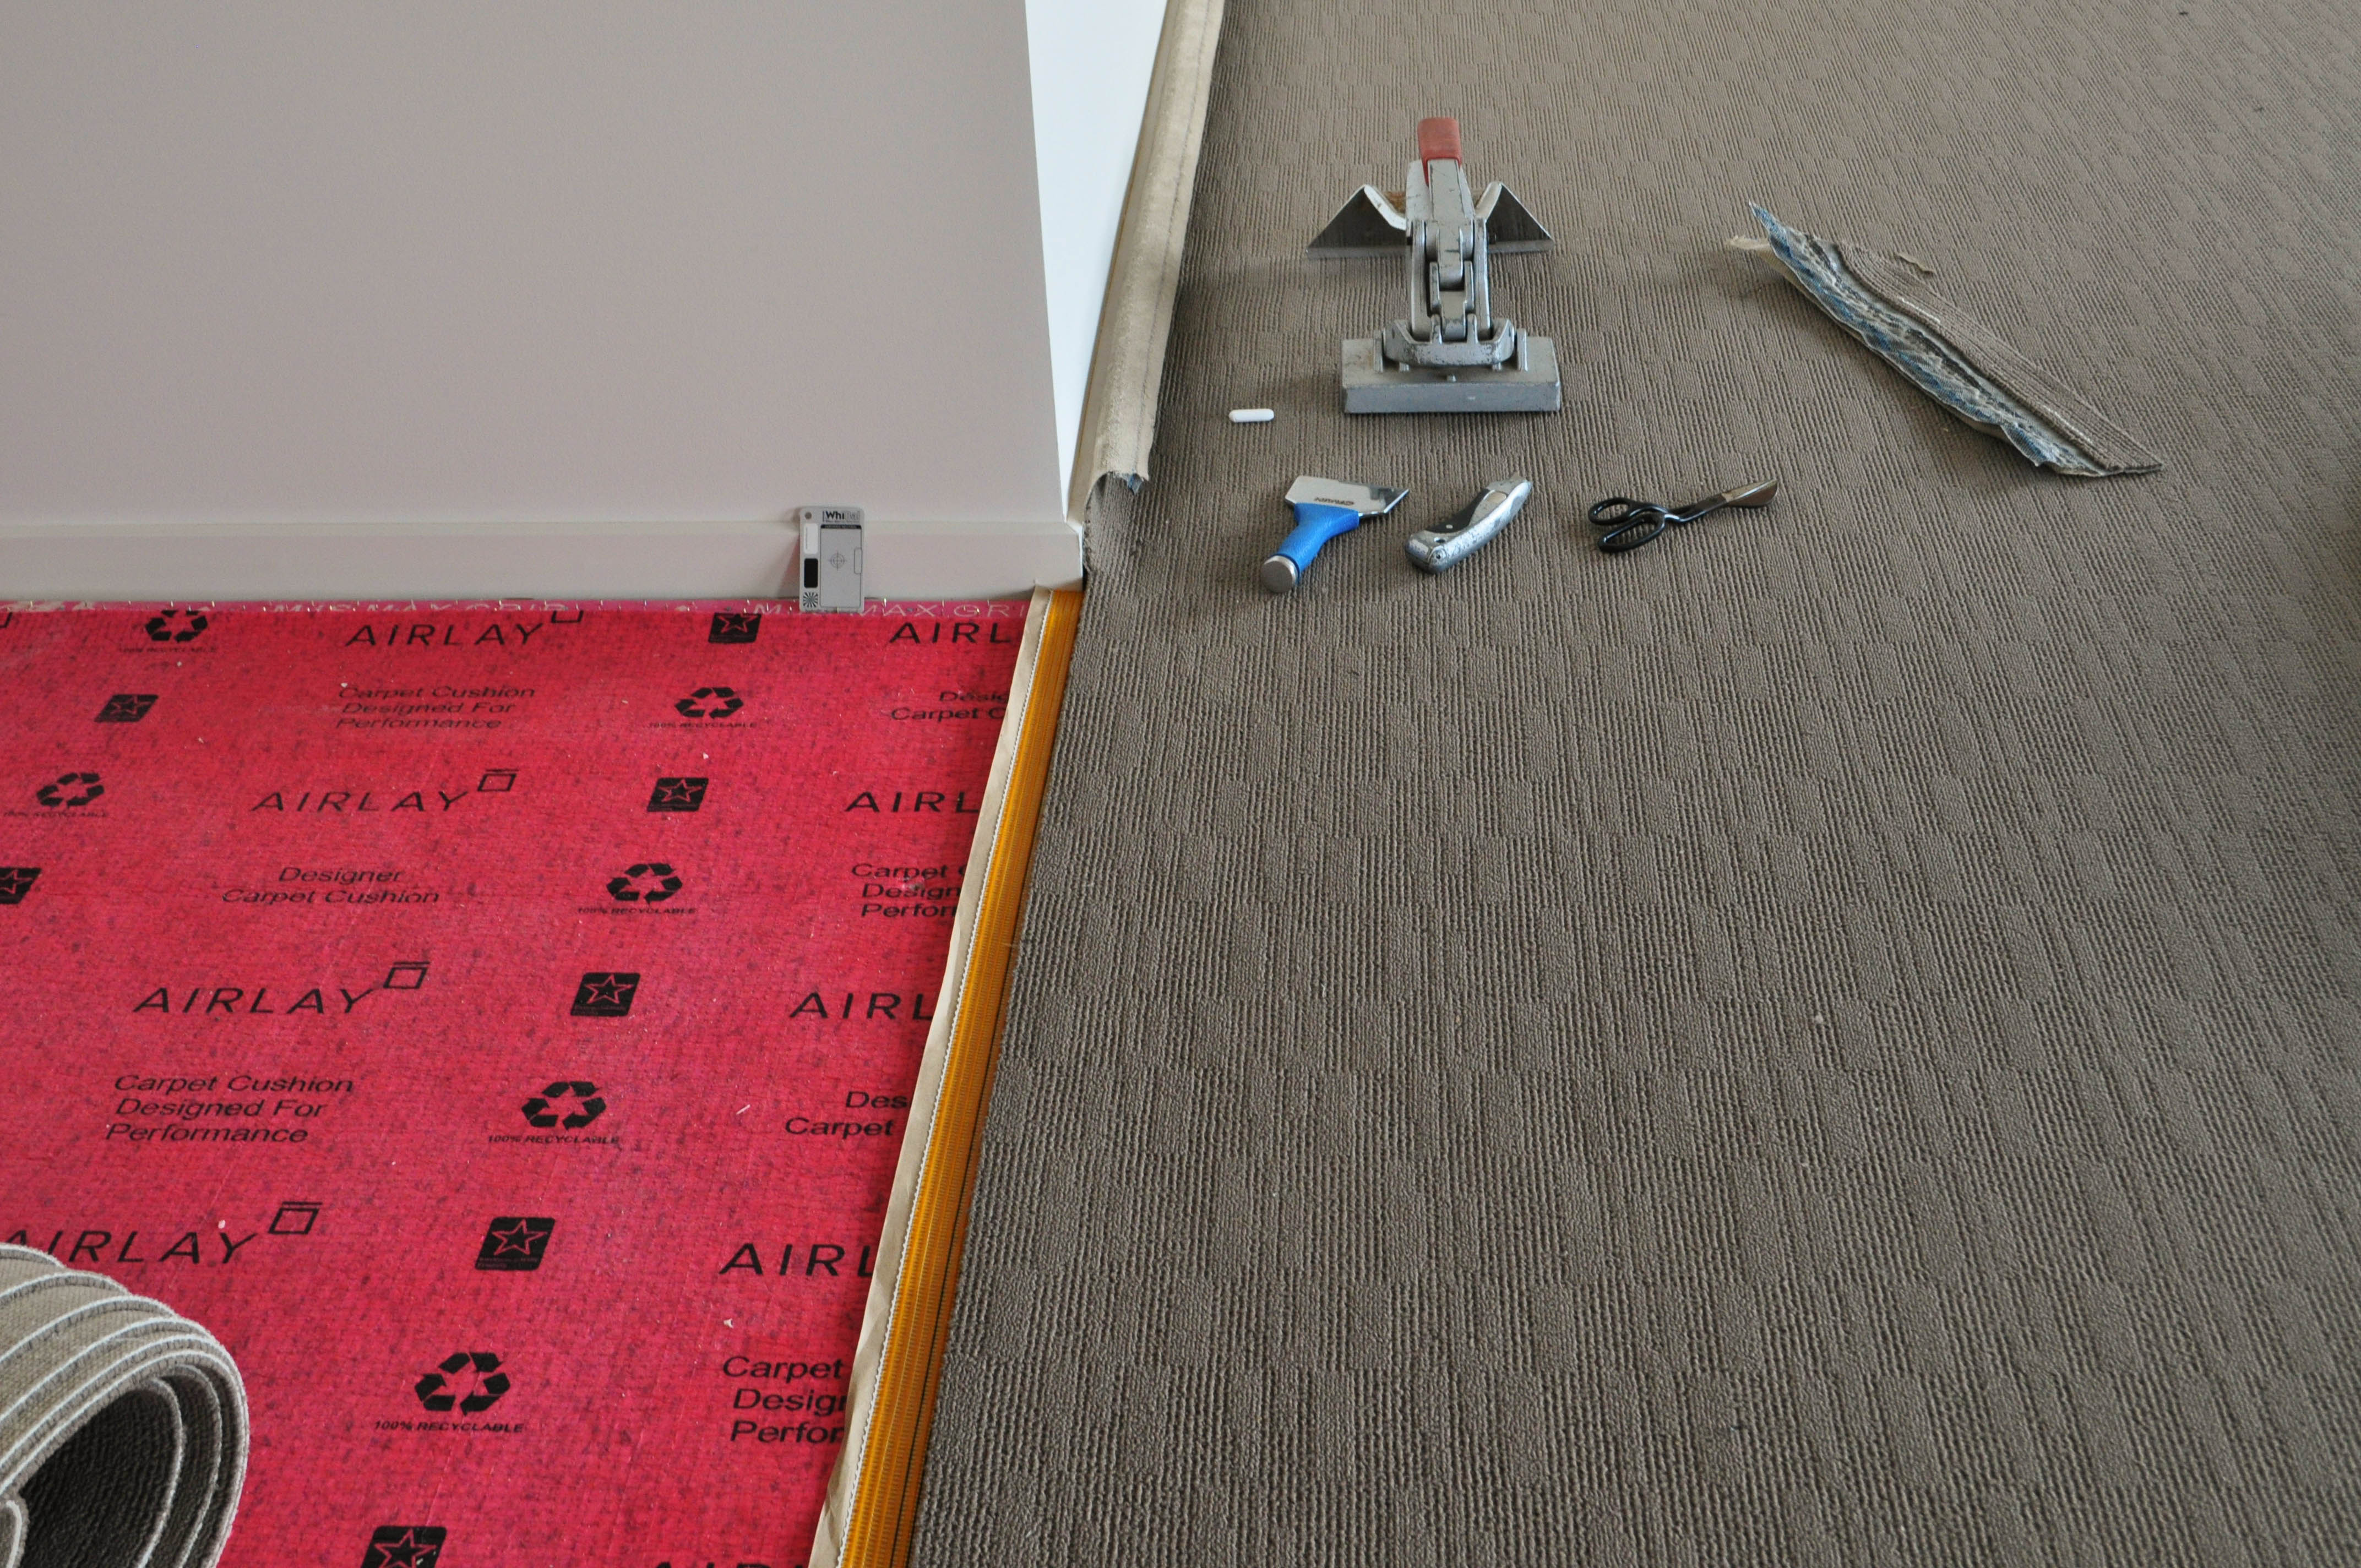 carpet laying process under way by Concord Floors, showing a roll of carpet stretched out and prepared for joining to other carpet roll